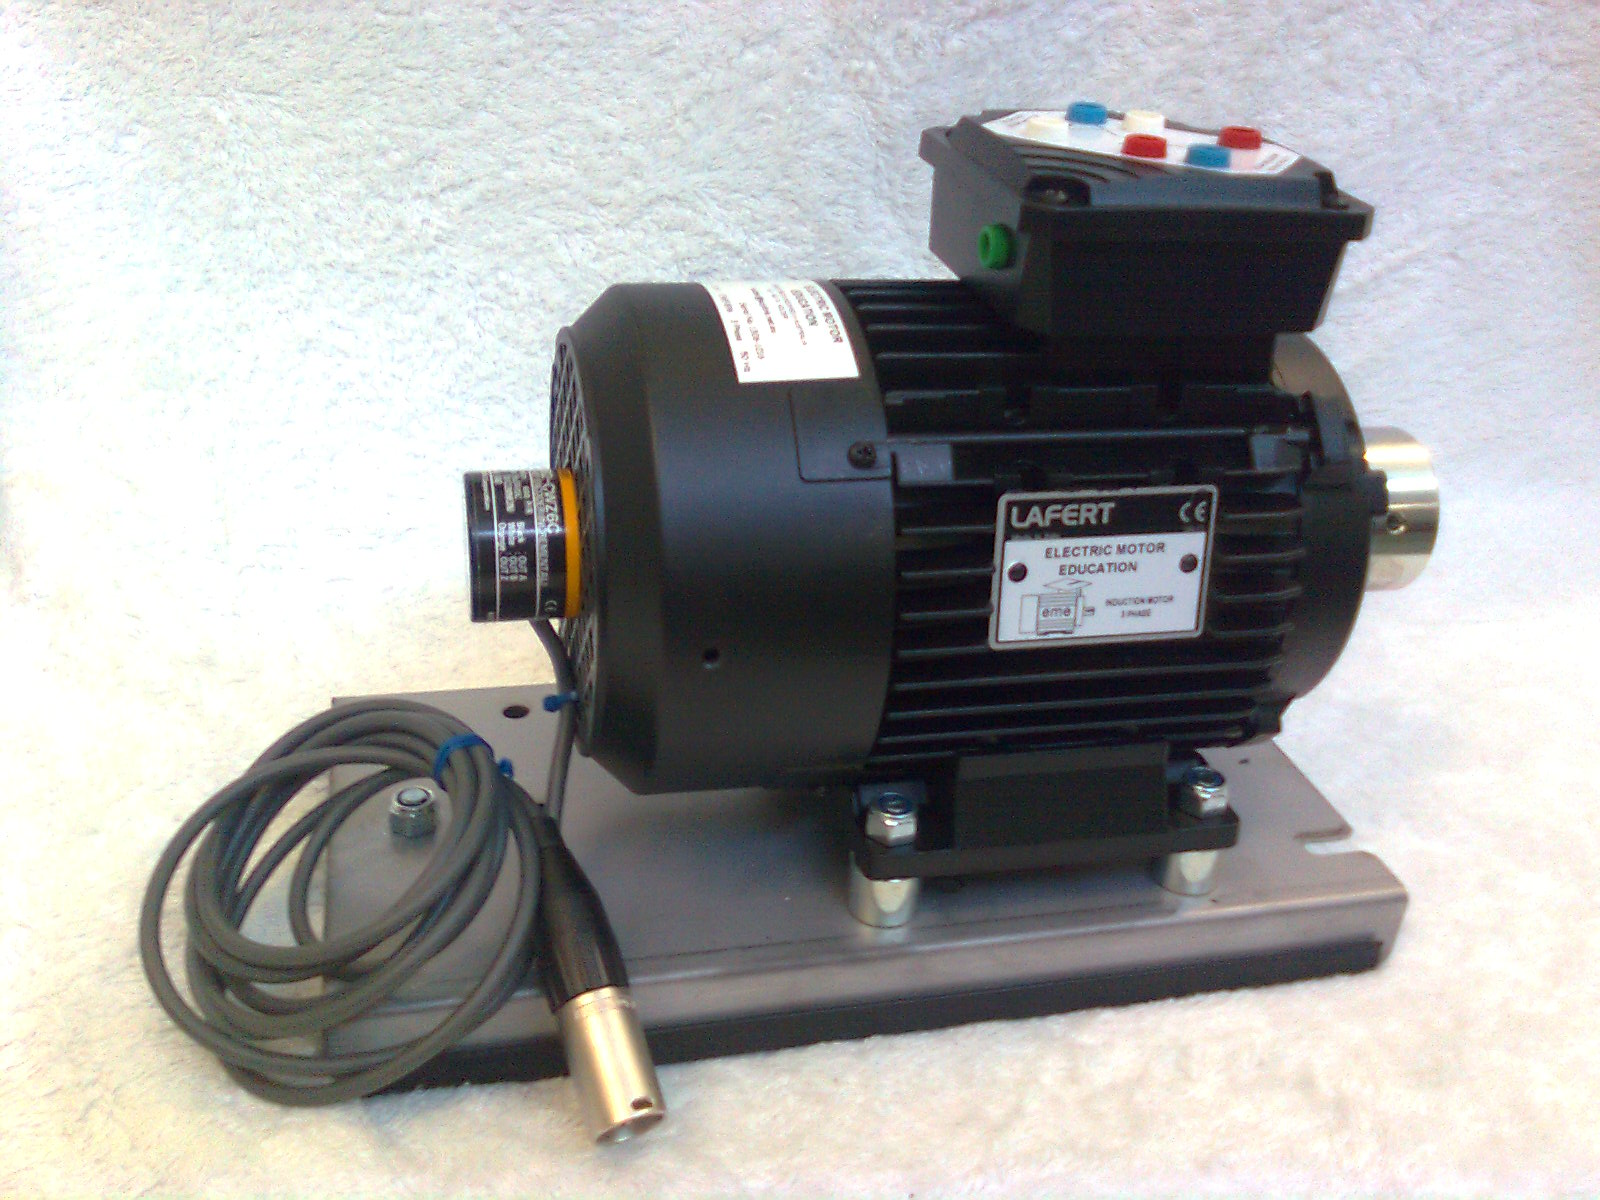 Products Electric Motor Education Diagrams Three Phase Motors Ydelta 6 Leads Us 71 3 L050 A This Is